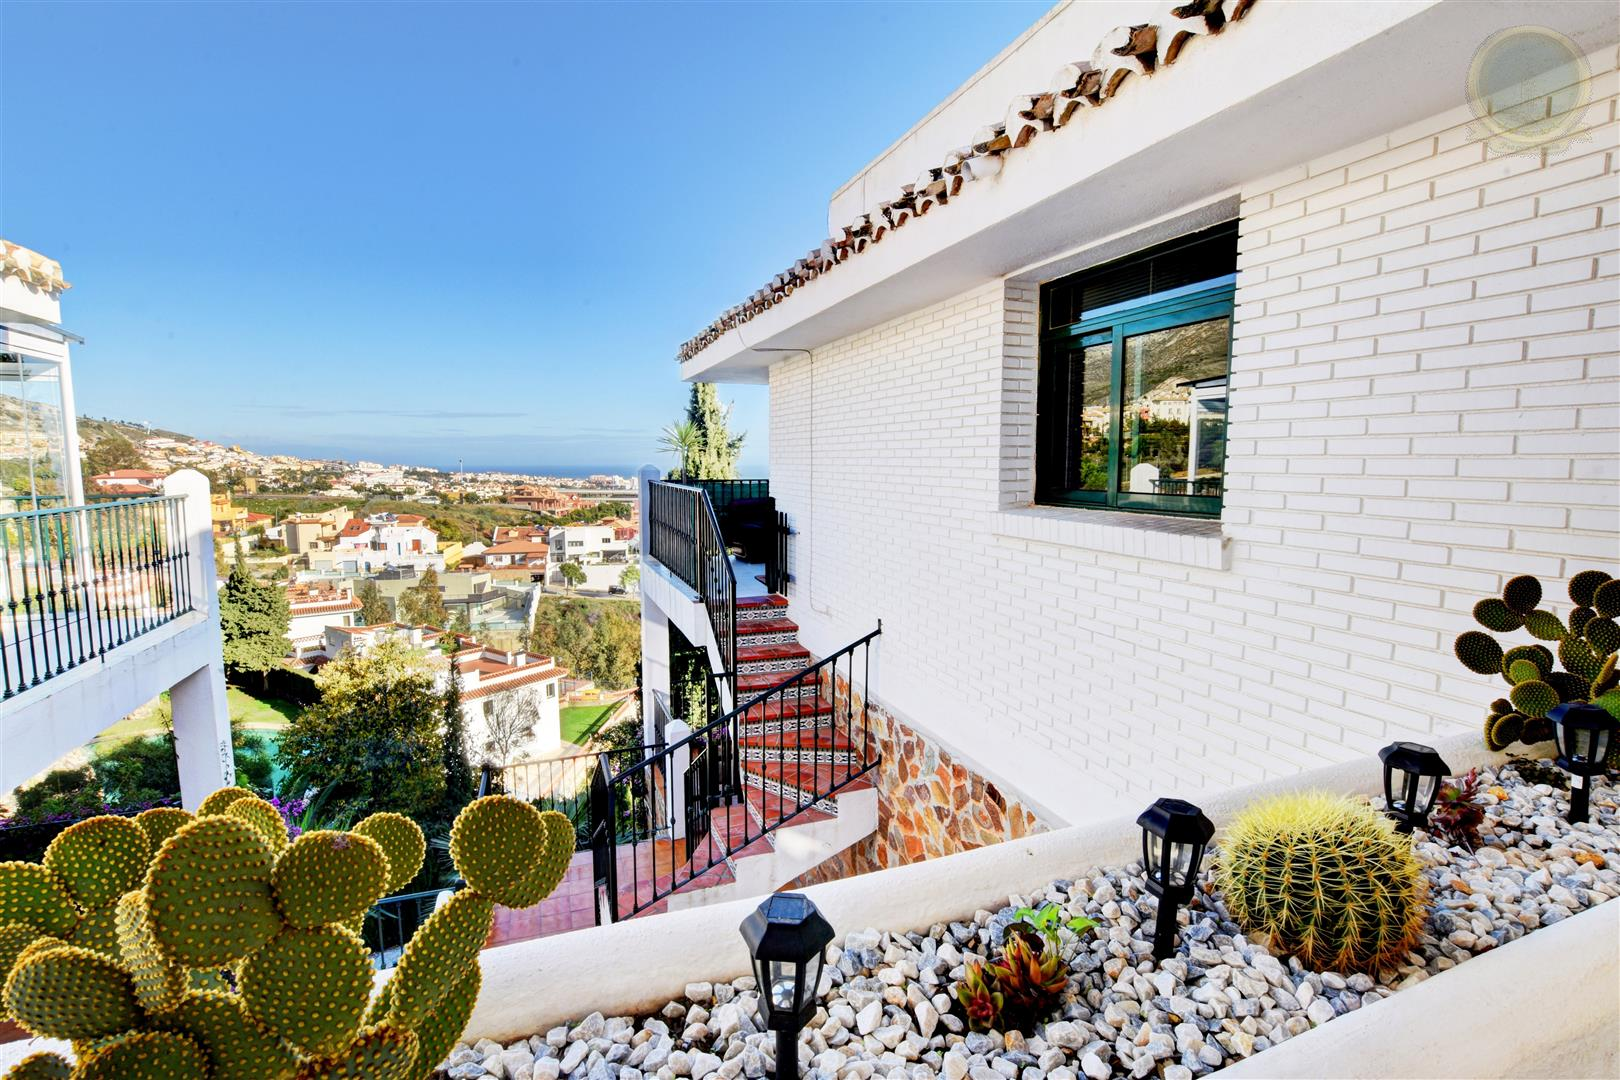 townhouse for sale in Benalmadena Pueblo with sea views